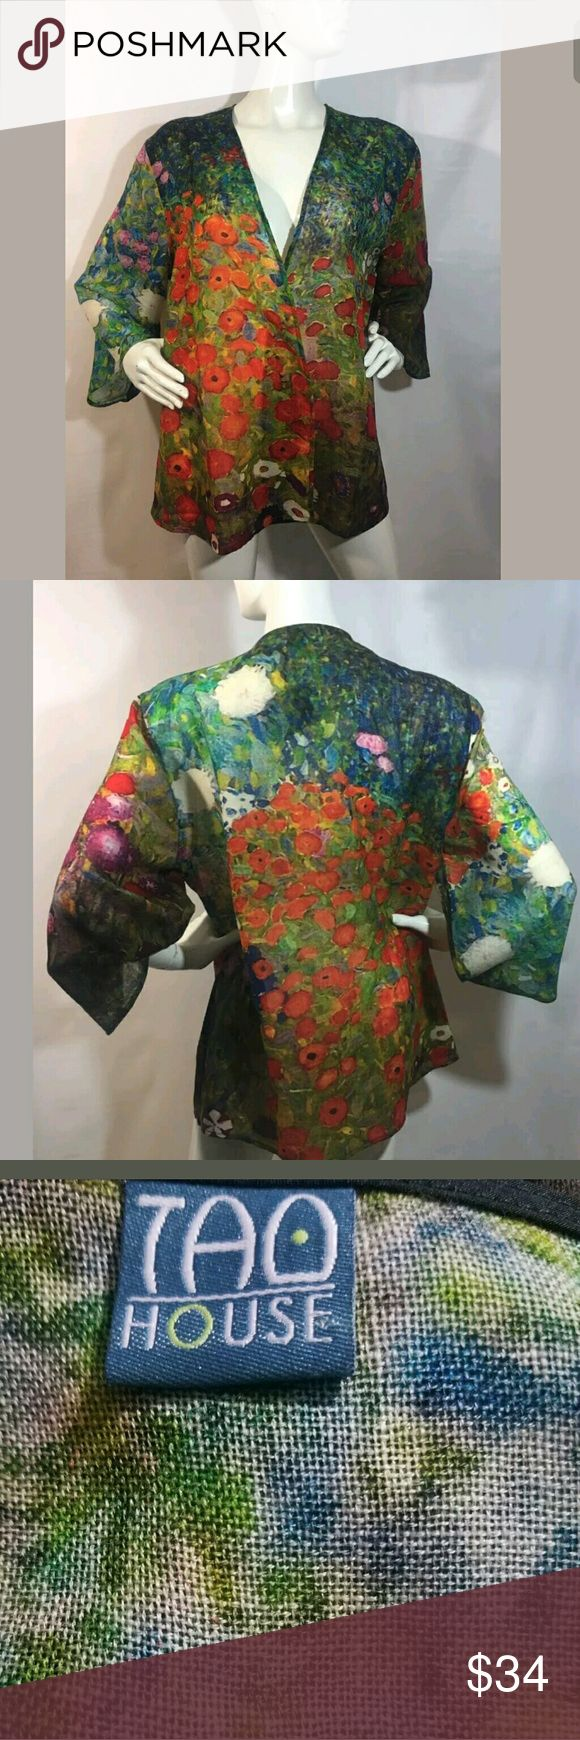 Tao House Kimono Top Large / Extra Large Tao House Kimono Top Women's Large / Extra Large 100% Wool Open Wrap Multicolor  New top. Size Large/ Extra Large.  24 inches pit to pit.  28.5 inches long.   LB Tao House Tops